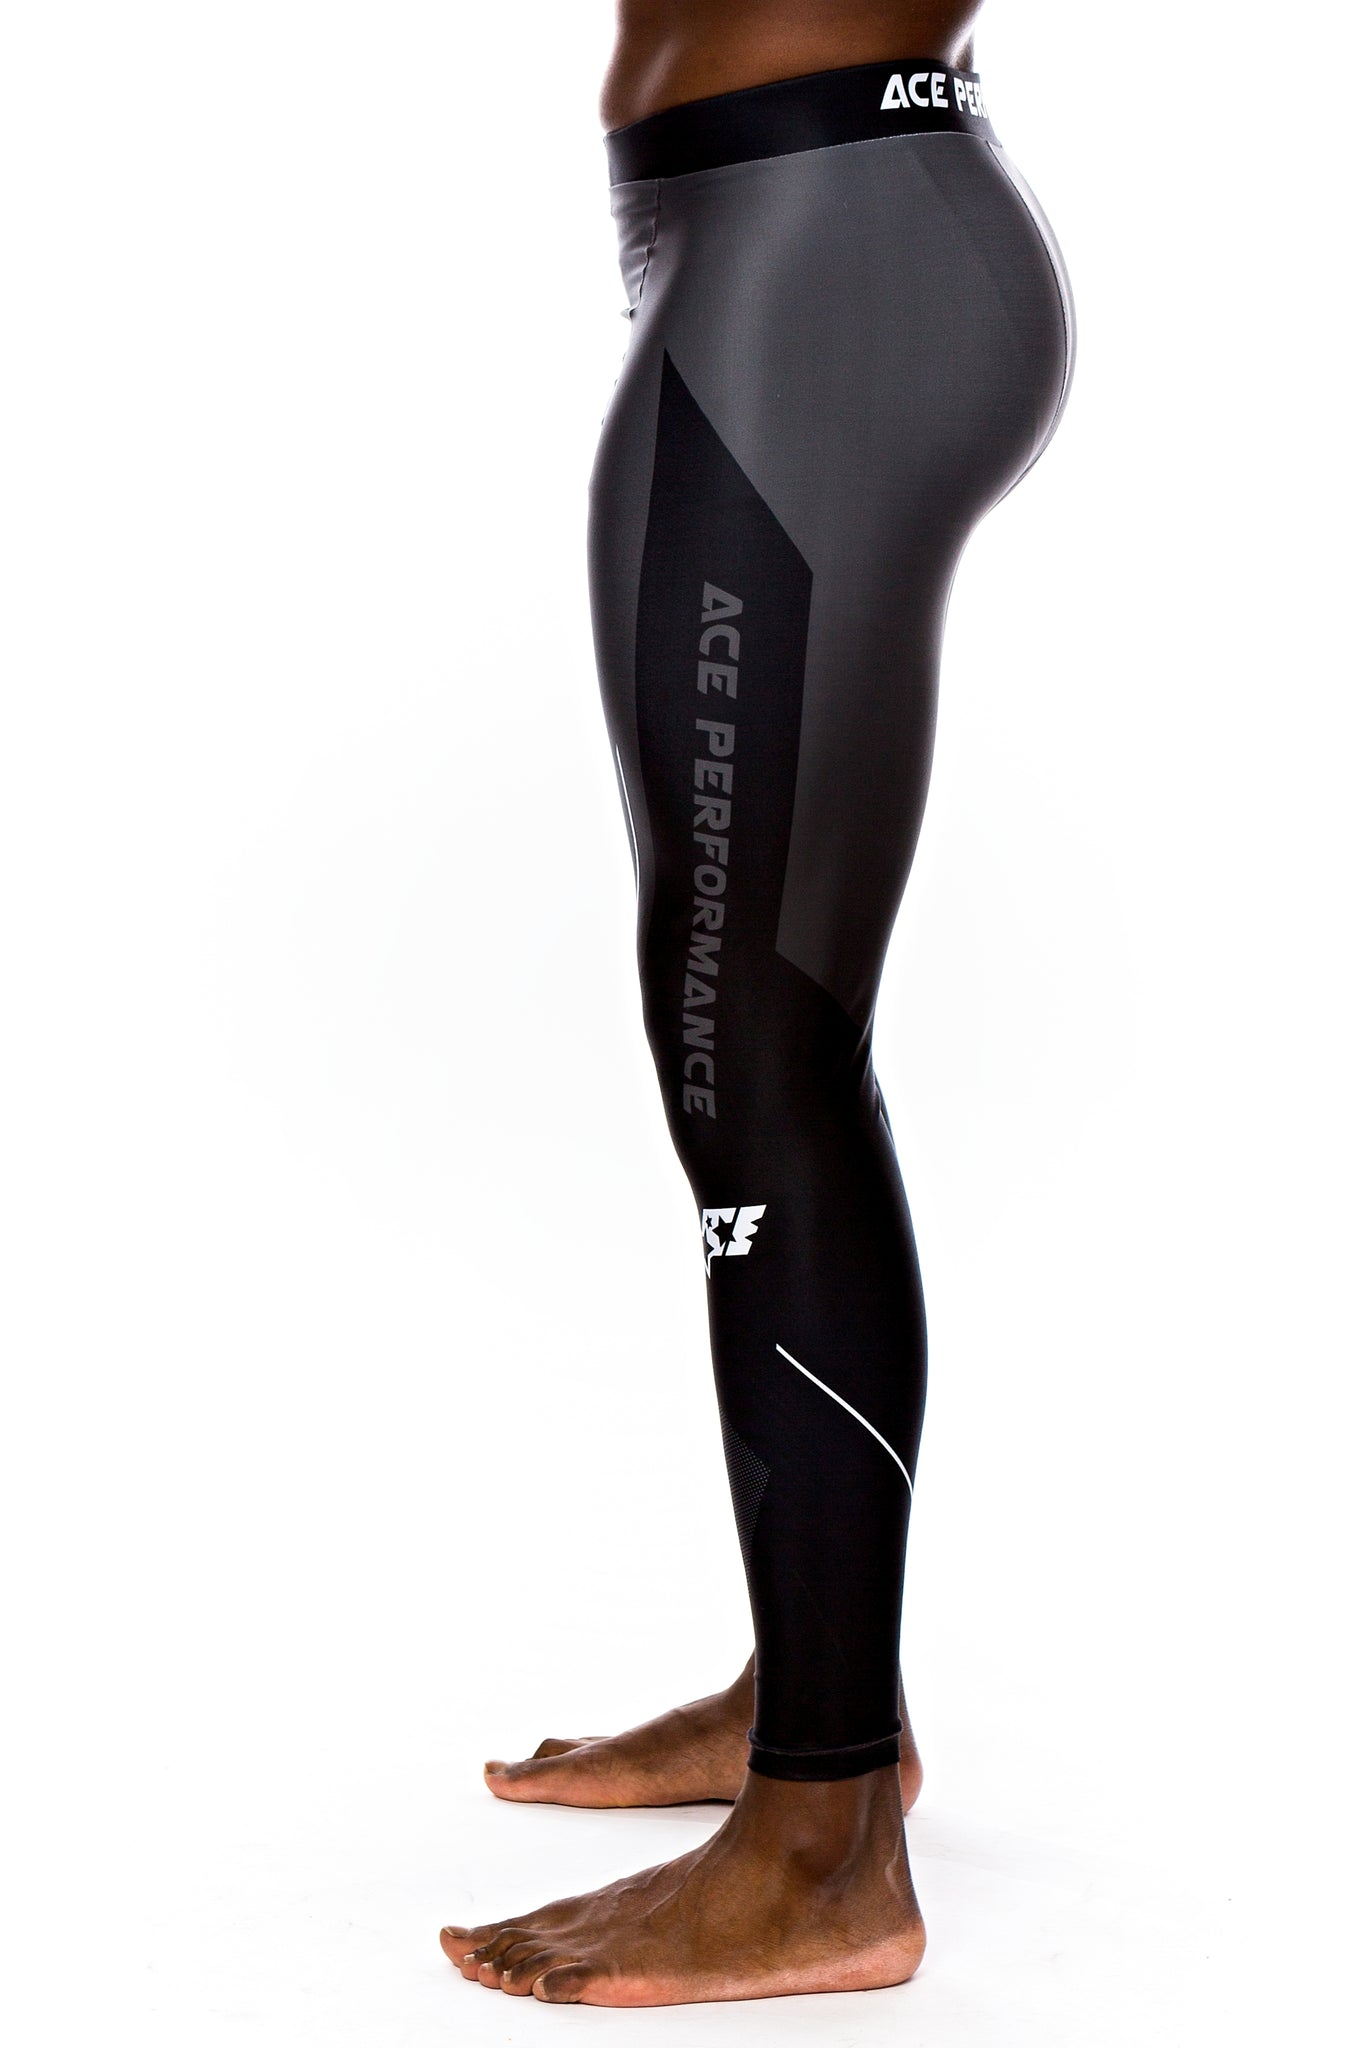 ALPHA SERIES COMPRESSION PANTS - ACE BLACK - ACEPERFORMANCE